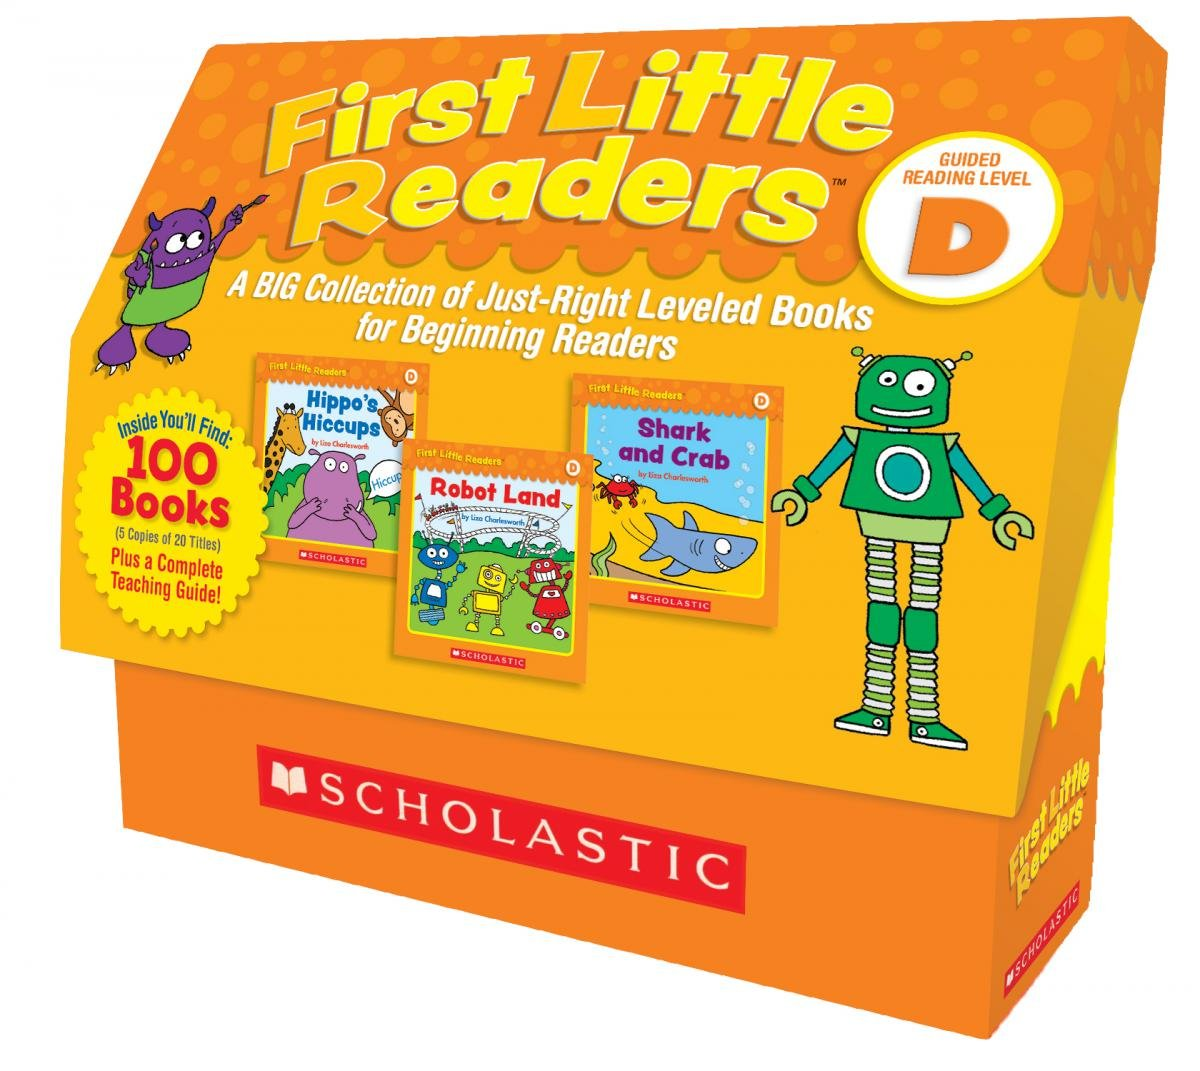 First Little Readers: Guided Reading Level D: A BIG Collection of Just-Right Leveled Books for Beginning Readers by Teaching Resources